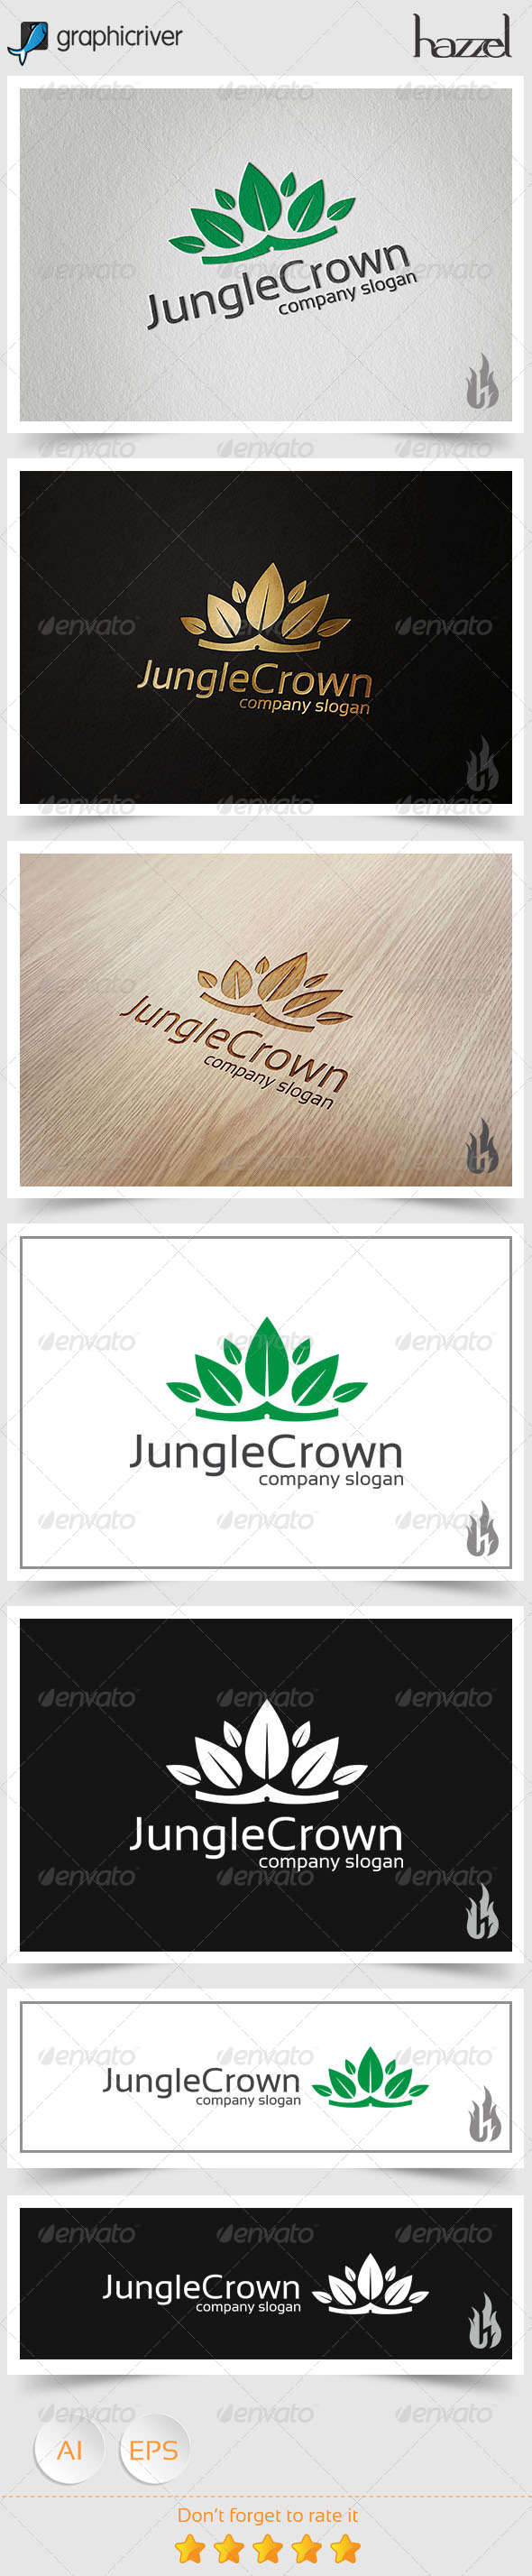 GraphicRiver Jungle Crown Logo 8494512